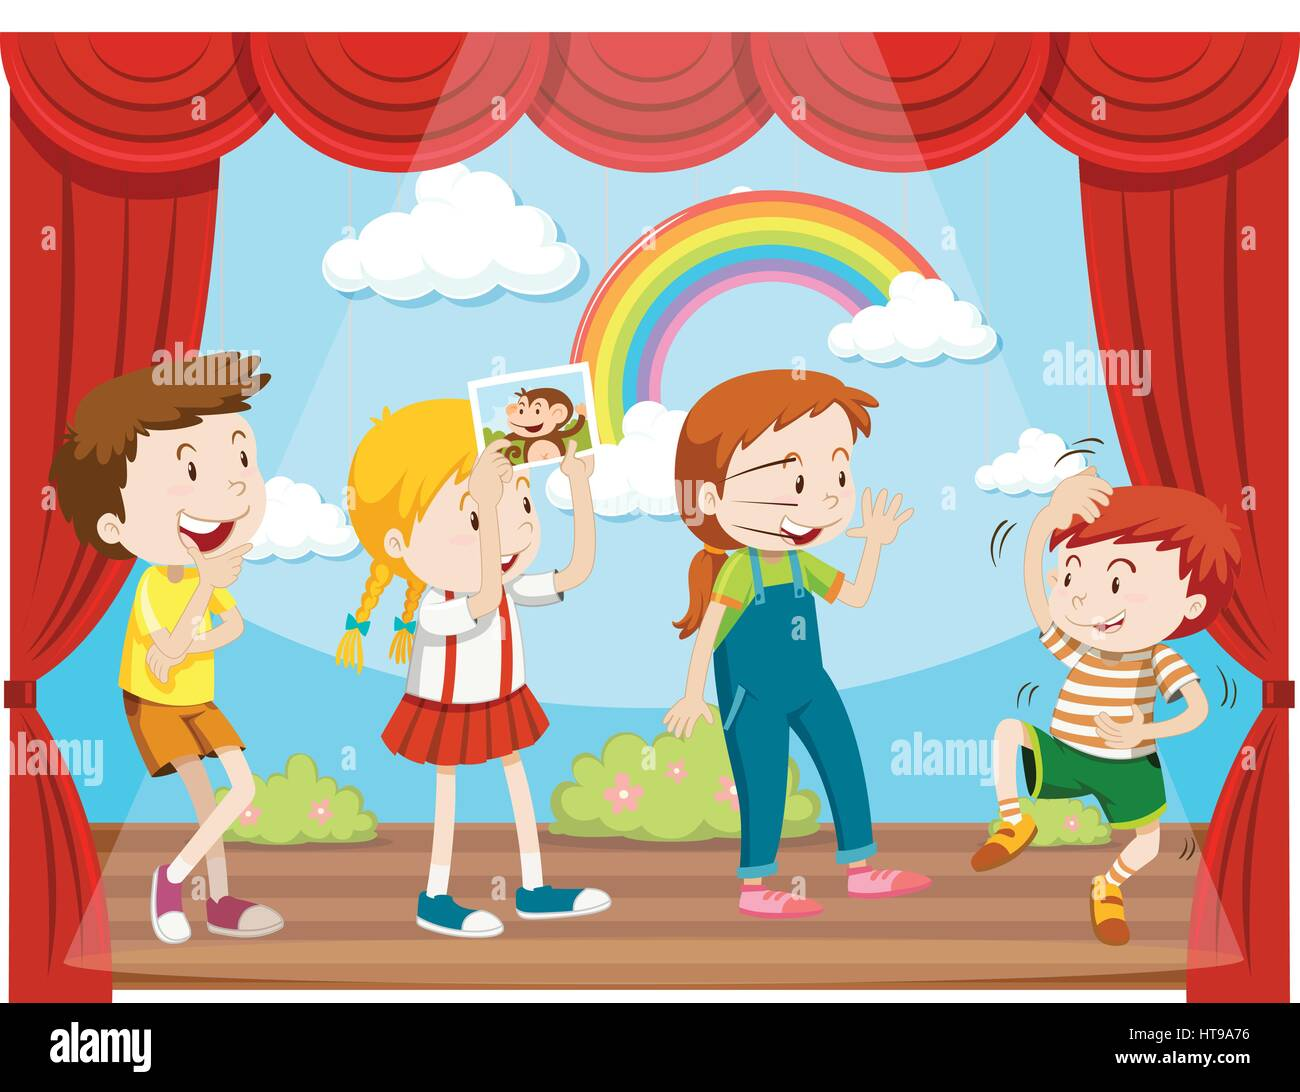 Royalty Free Hamlet Play Clip Art, Vector Images ...  |Acting On Stage Cartoon